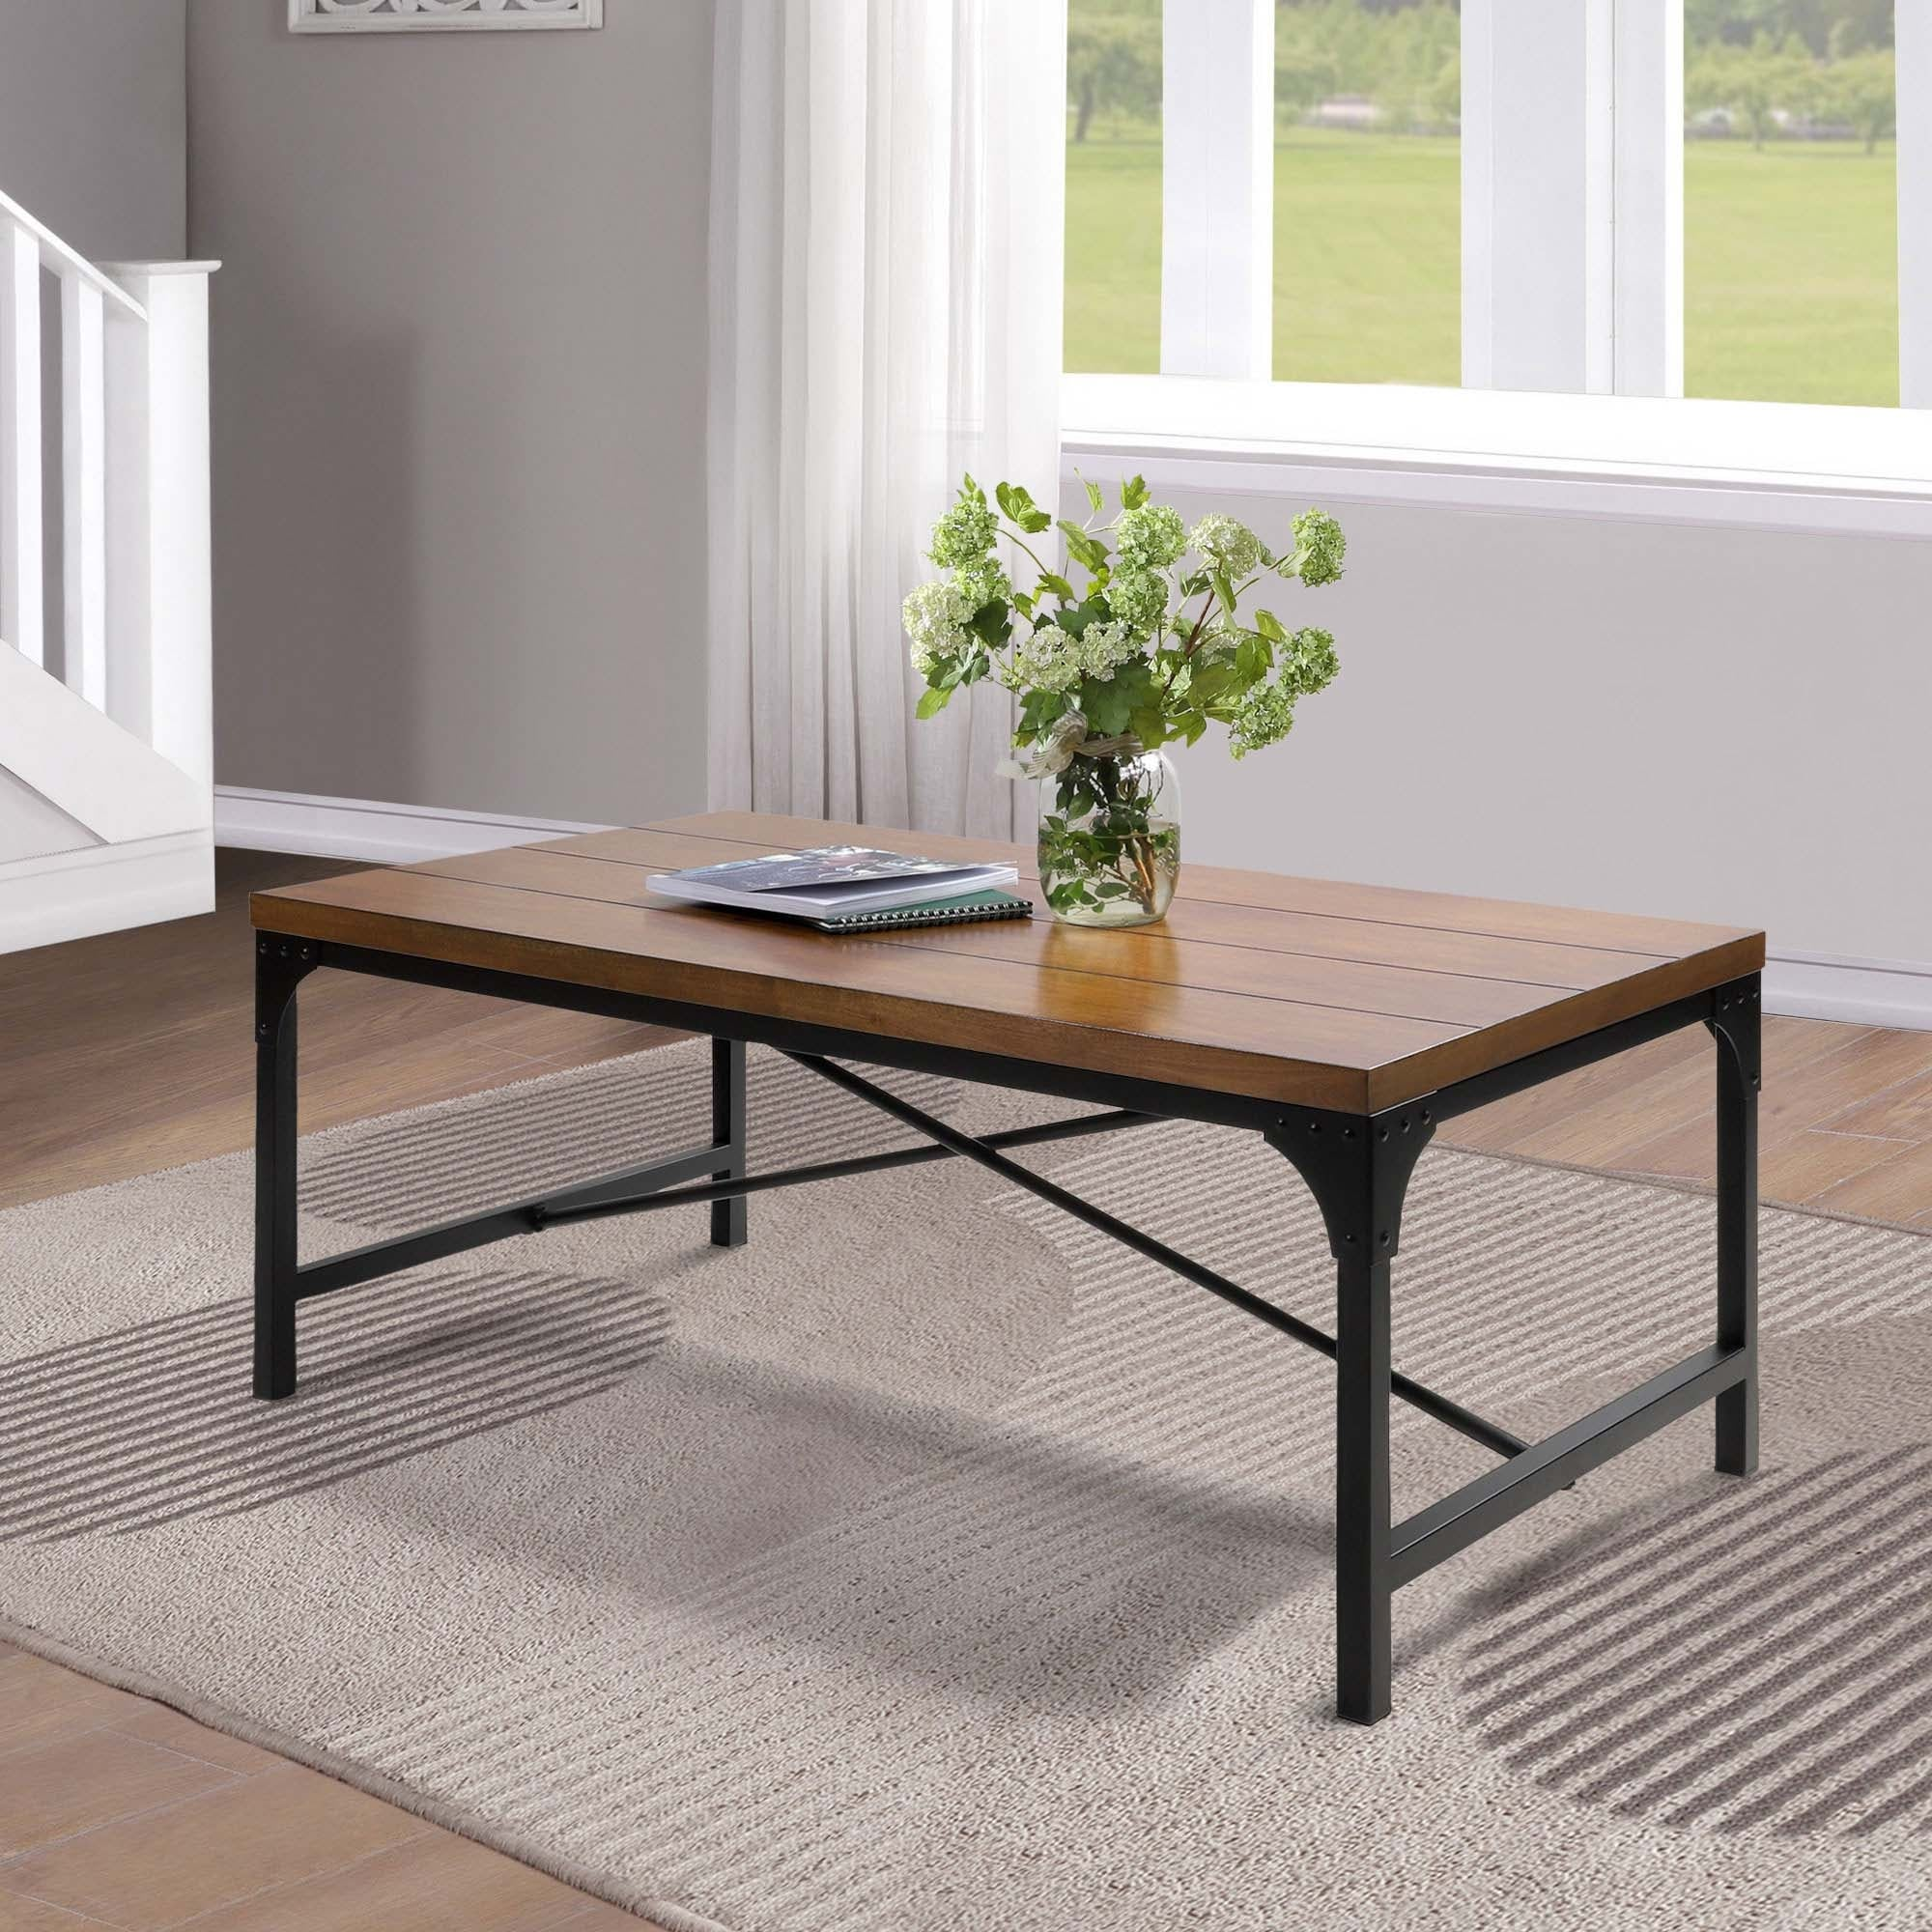 modern industrial black coffee table antique wood and metal for living room